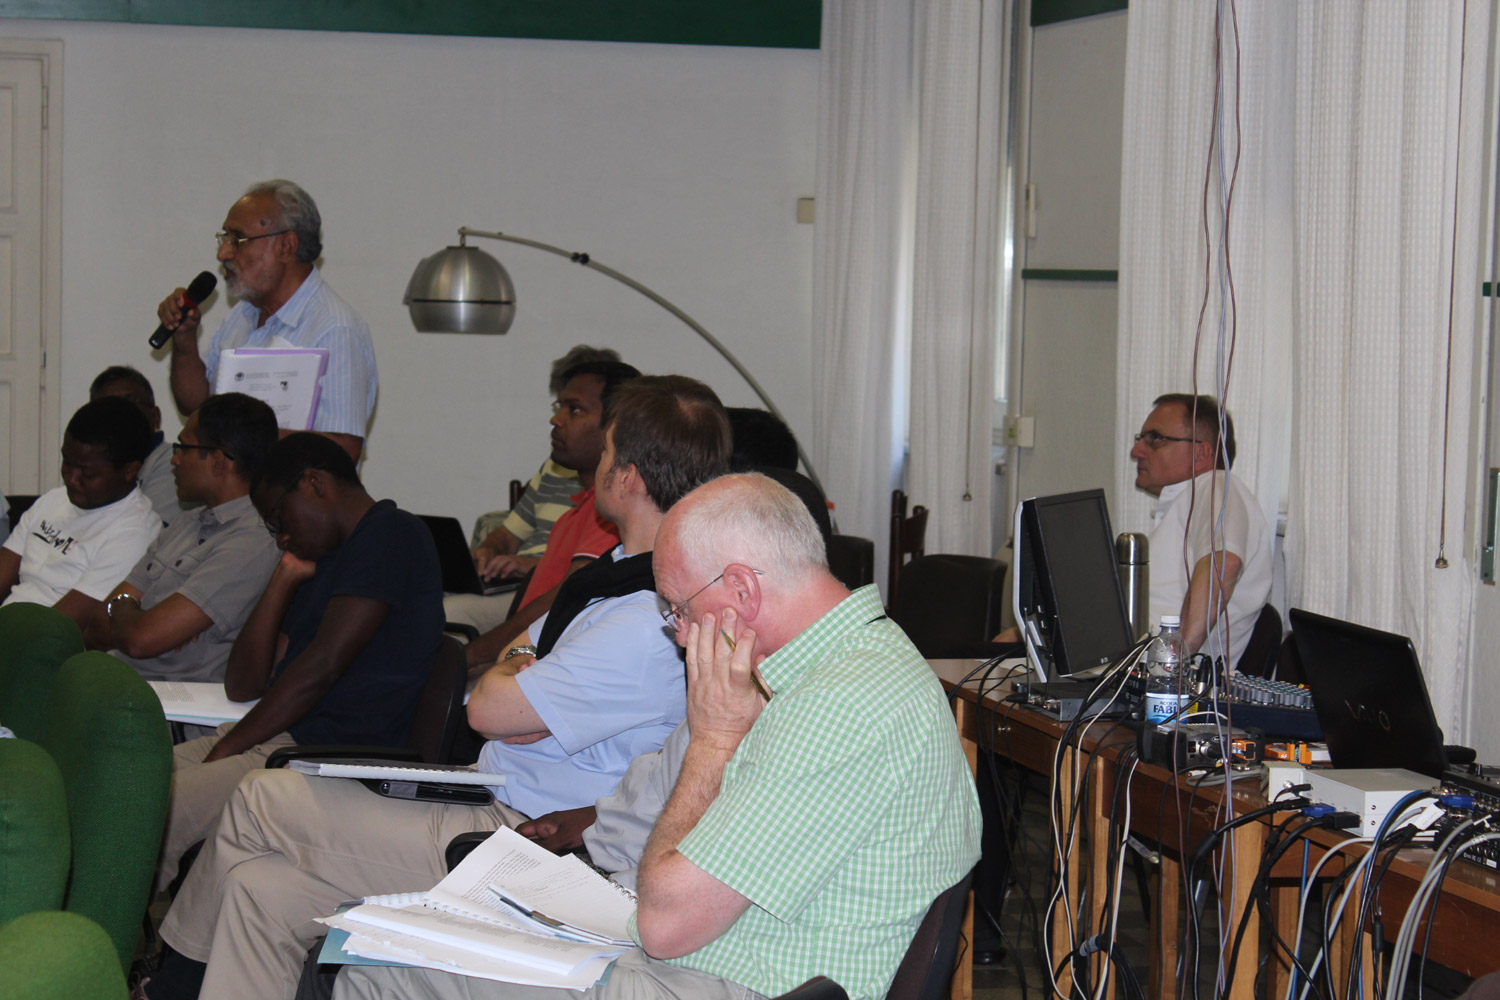 <b>Congress on Oblate Charism - Day 2 Rome</b><br>Fr. Gilberto Pinon omi reacts<br>Shanil Jayawardena OMI<br>July 1st, 2015